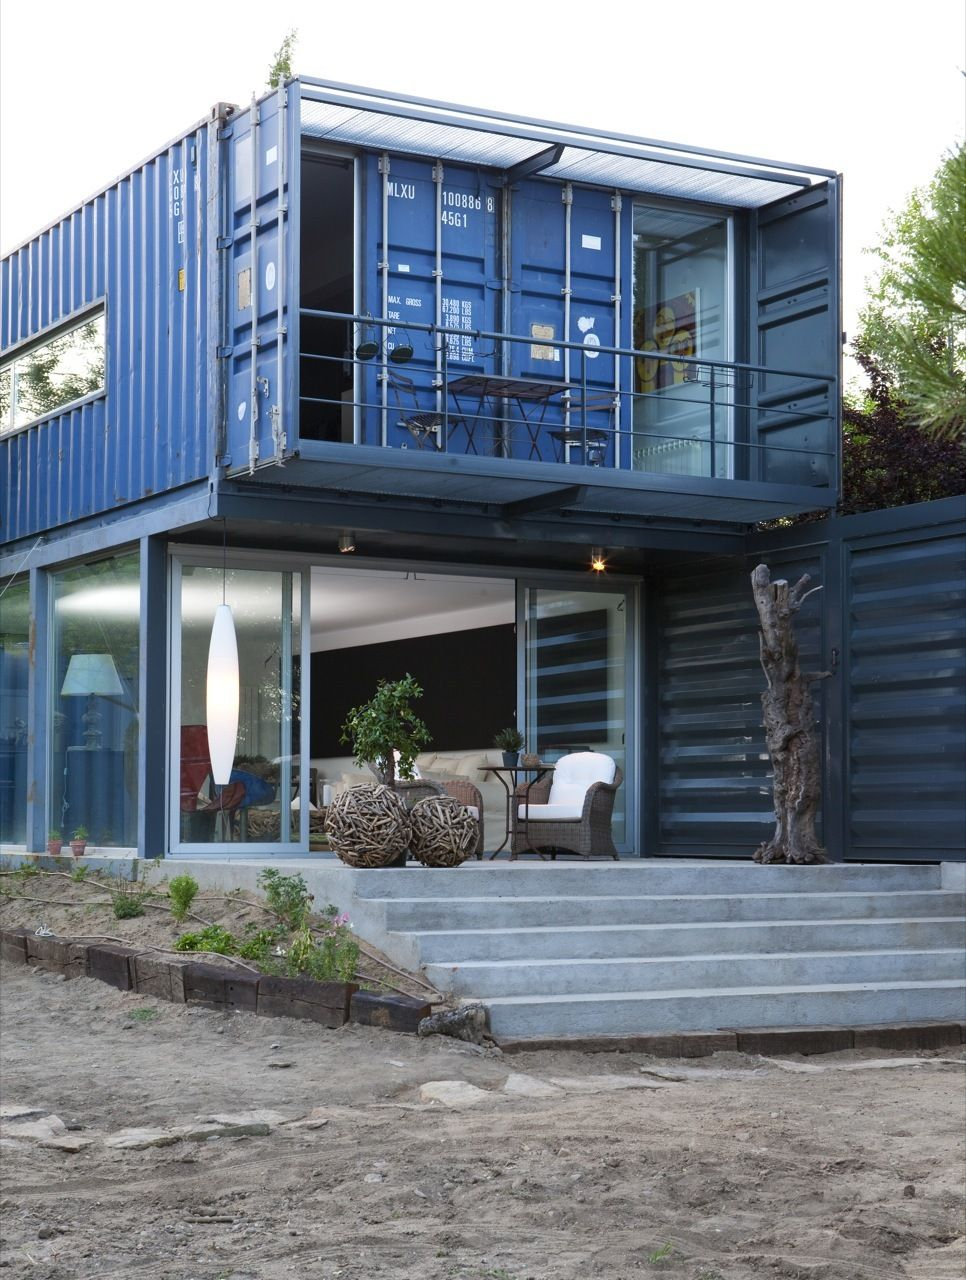 Best Kitchen Gallery: 100 Of The Most Impressive Shipping Container Homes Spain House of Spain Shipping Container Home on rachelxblog.com